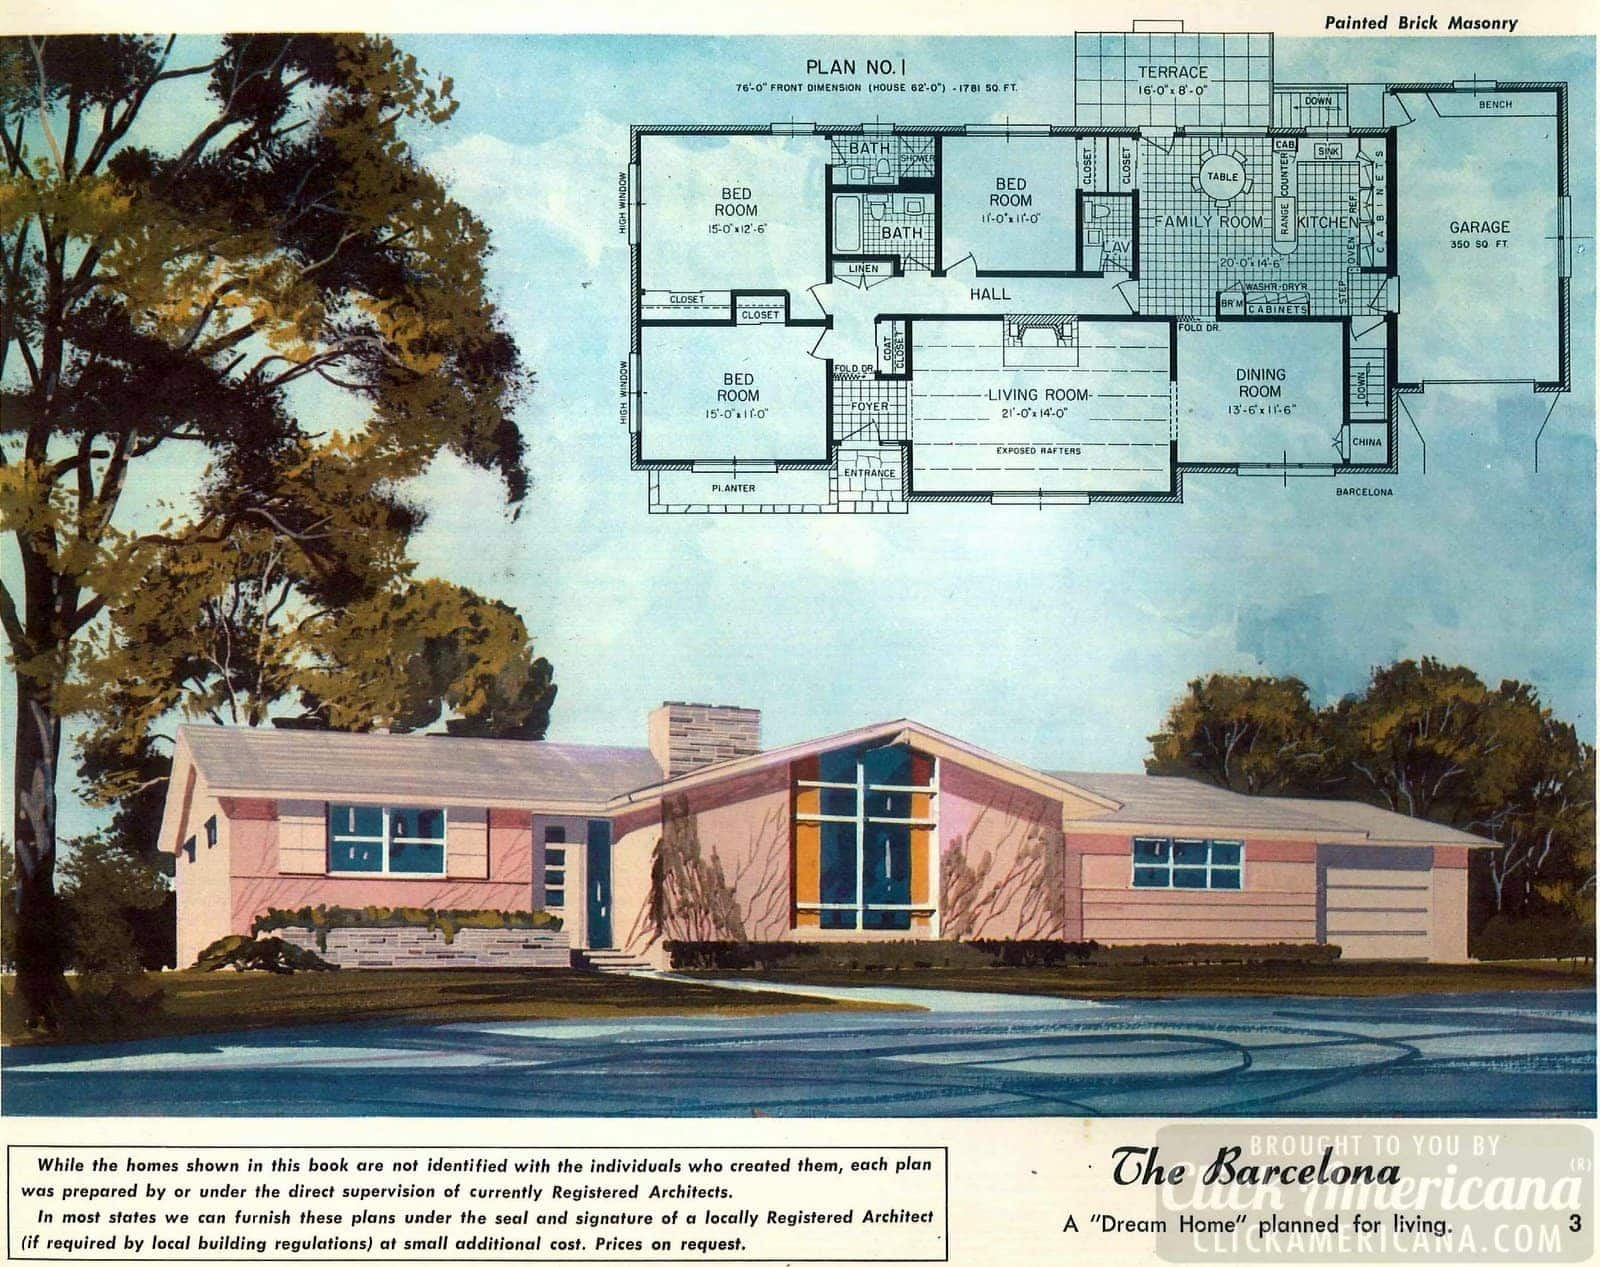 The Barcelona dream home: House design plans from the '50s